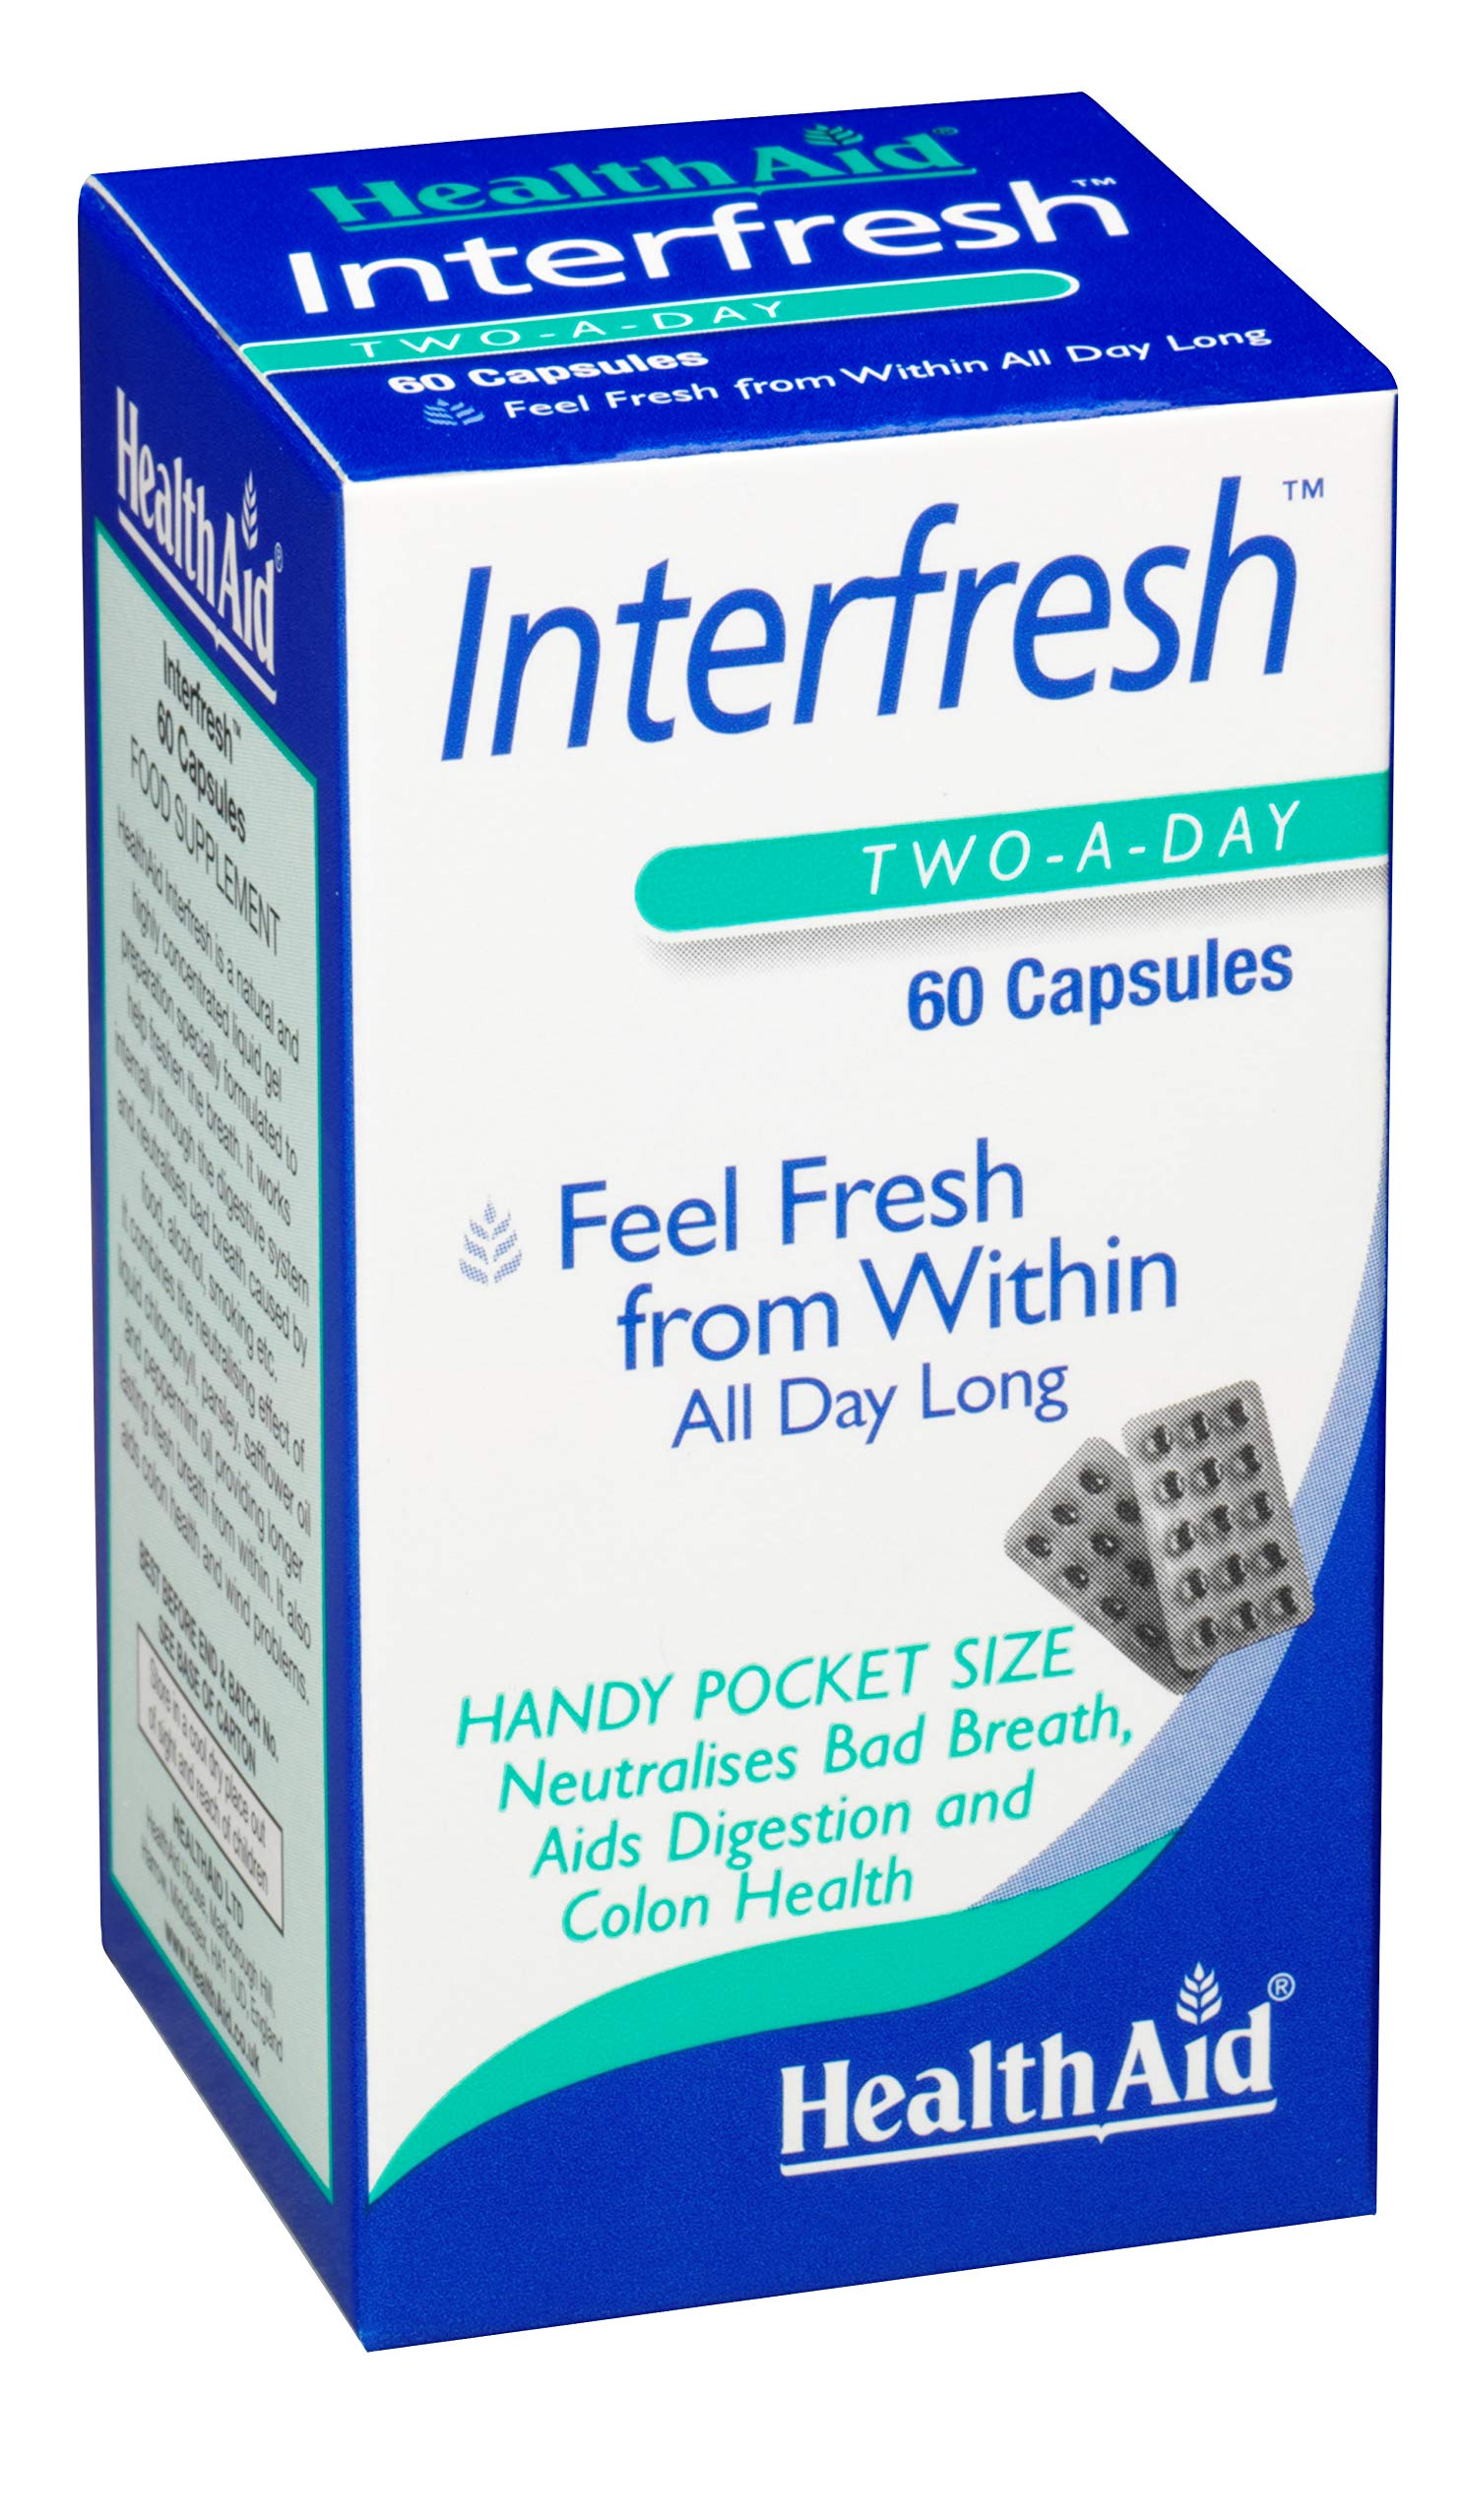 HealthAid Interfresh, 60 Soft Gel Capsules, Twice Daily, Fights Bad Breath and Aids in Digestion and Colon Health, Feel Fresh All Day Long